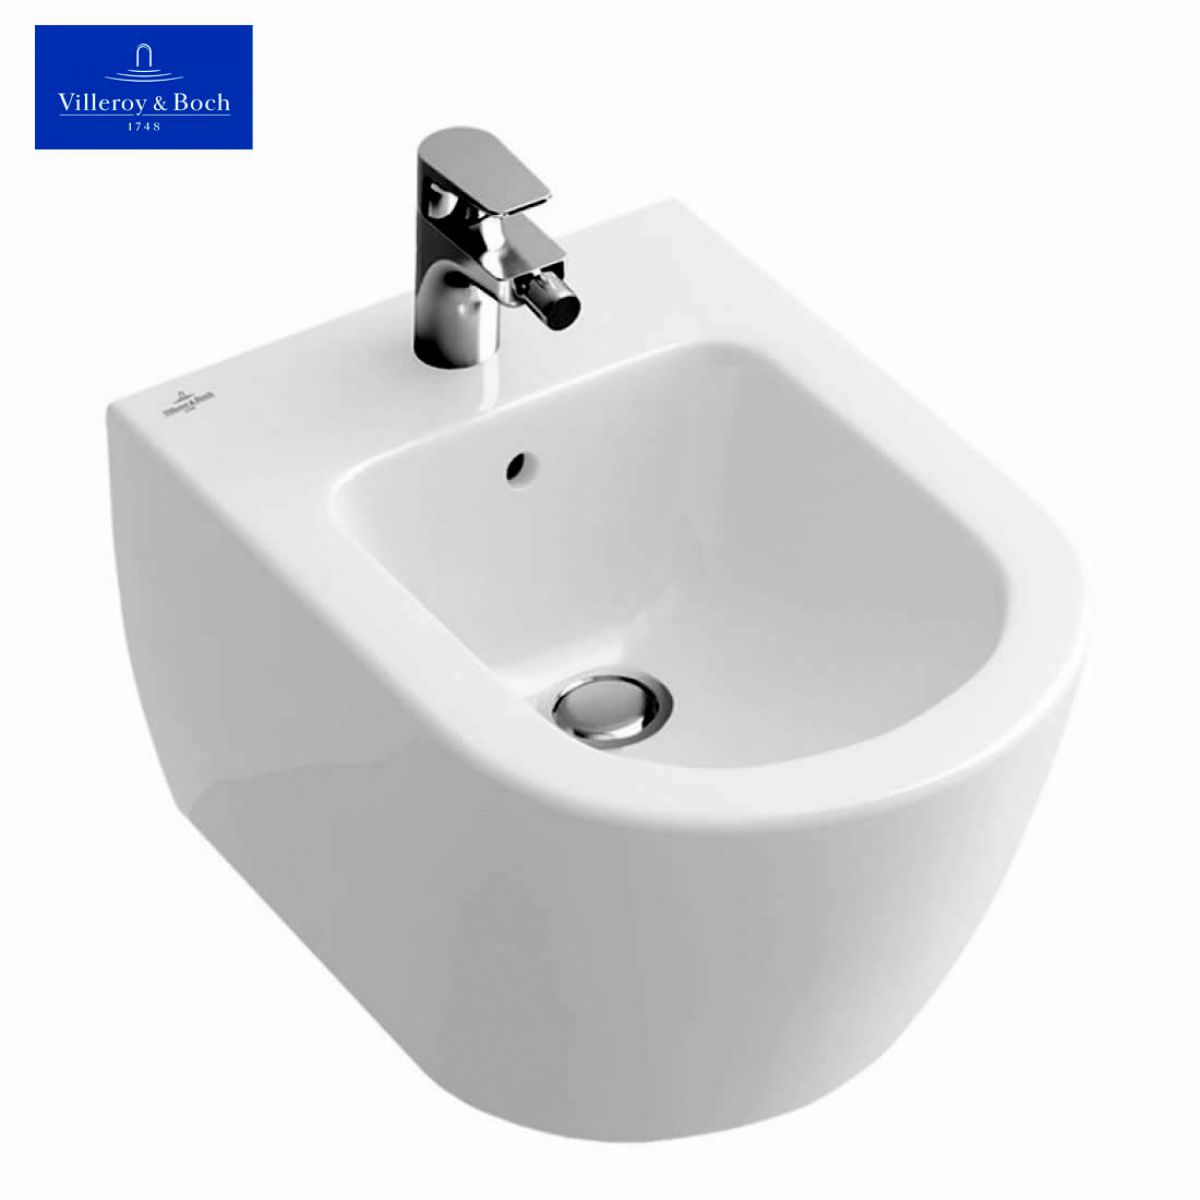 villeroy boch subway 2 0 wall mounted bidet uk bathrooms. Black Bedroom Furniture Sets. Home Design Ideas